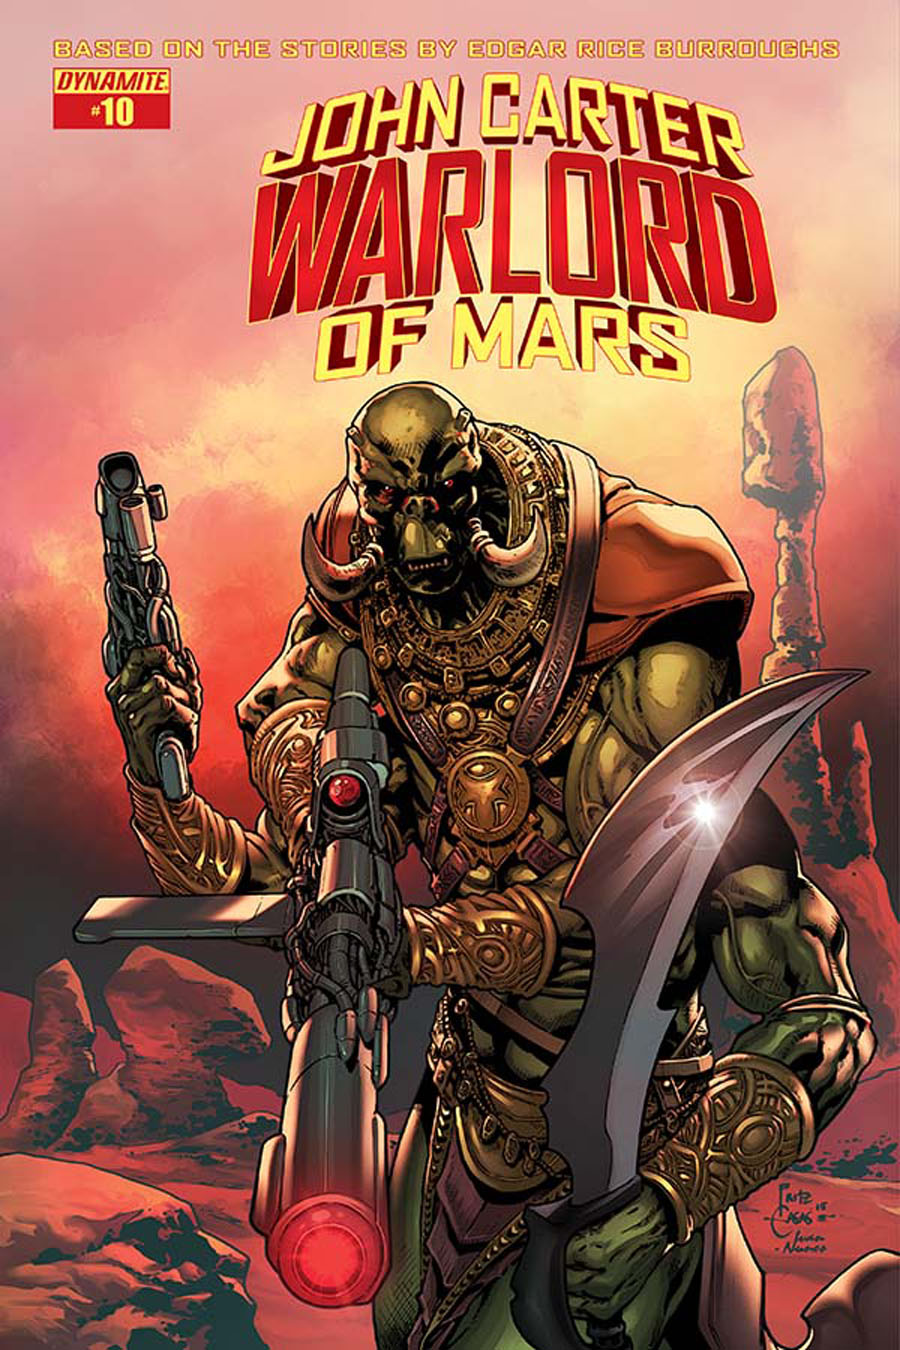 John Carter Warlord Of Mars Vol 2 #10 Cover A Regular Bart Sears Cover